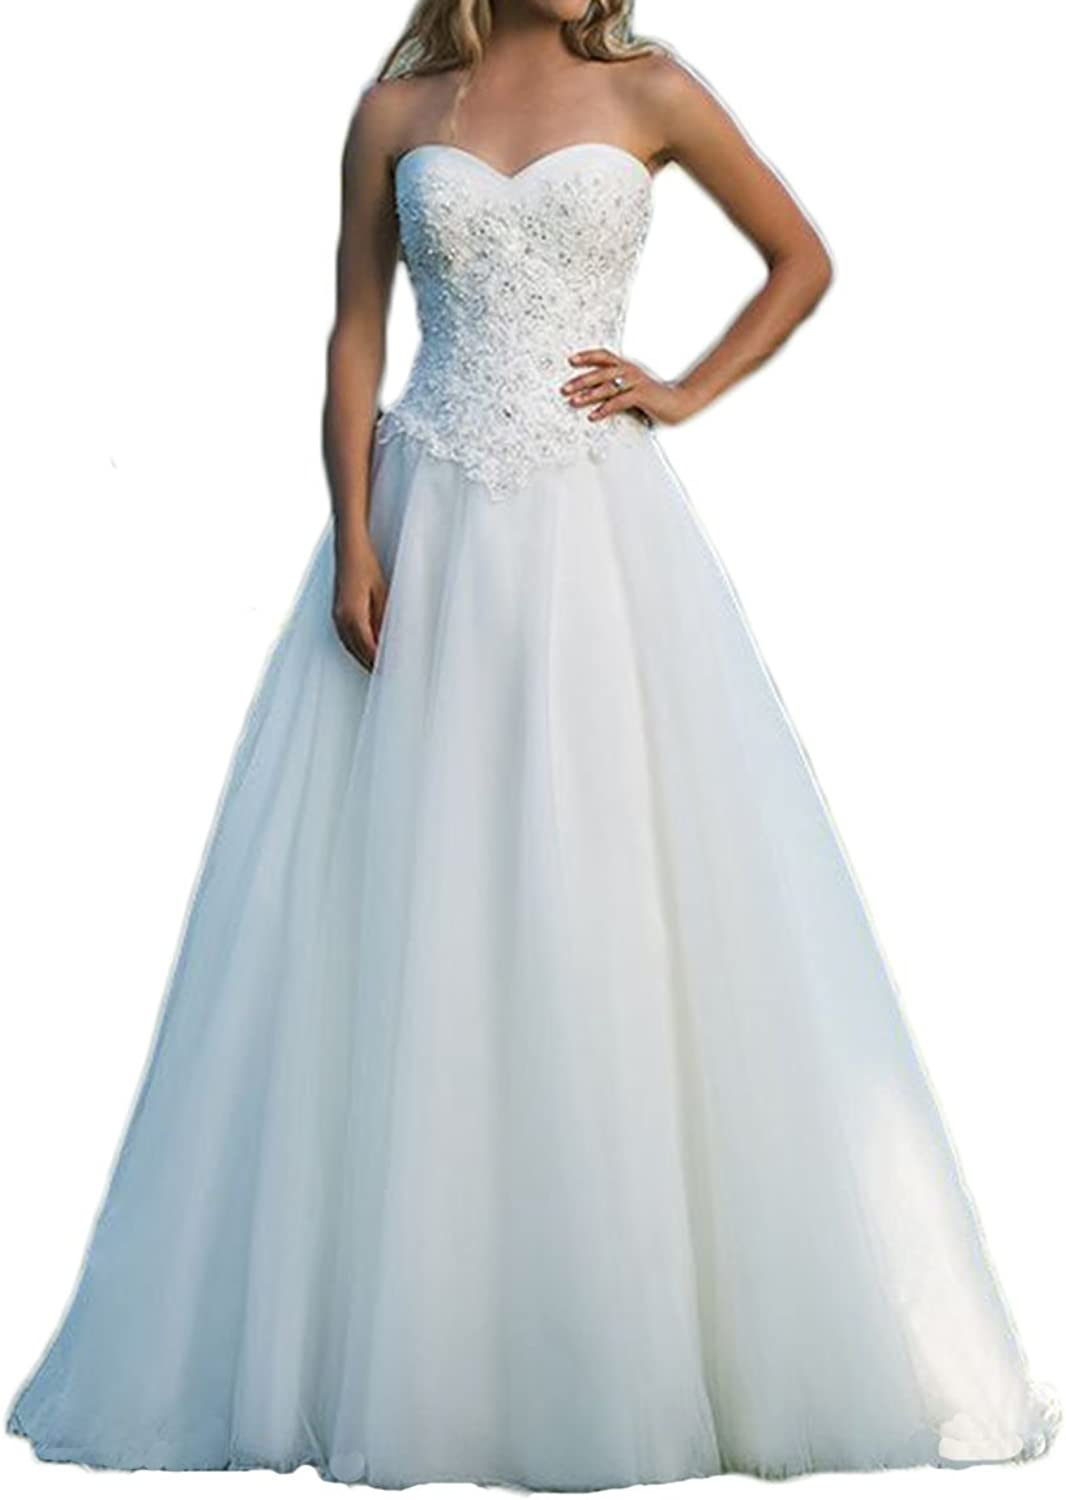 Alilith.Z Gorgeous Beaded Rhinestones Tulle Wedding Dresses Bride Ball Gown Sexy Sweetheart Bridal Gowns 2018 Train